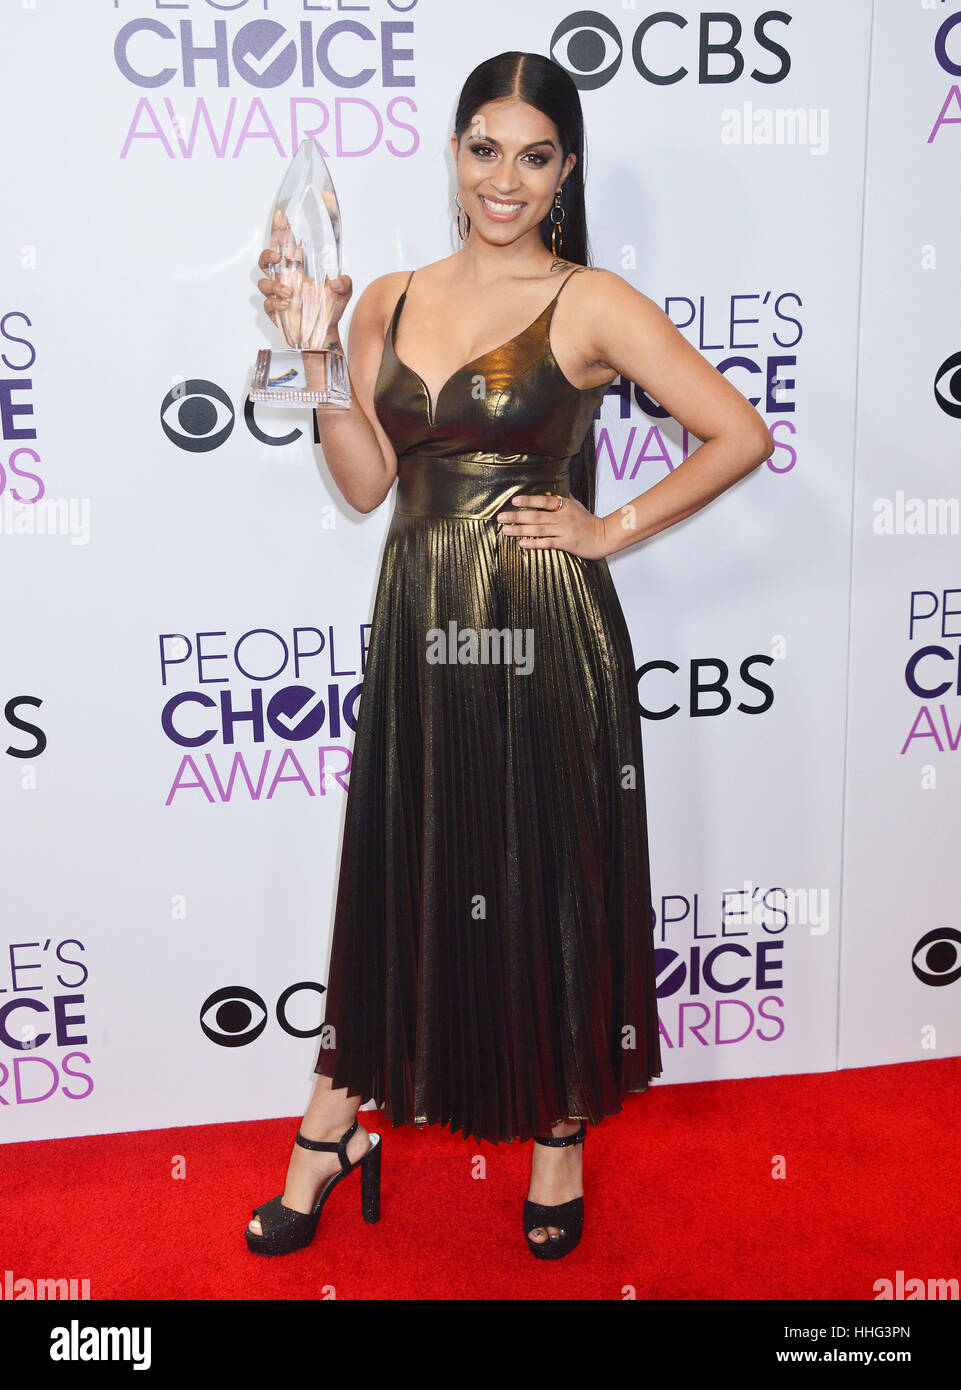 Lilly Singh 269 arriving at the People's Choice Awards 2017 at the Microsoft Theatre in Los Angeles. January - Stock Image